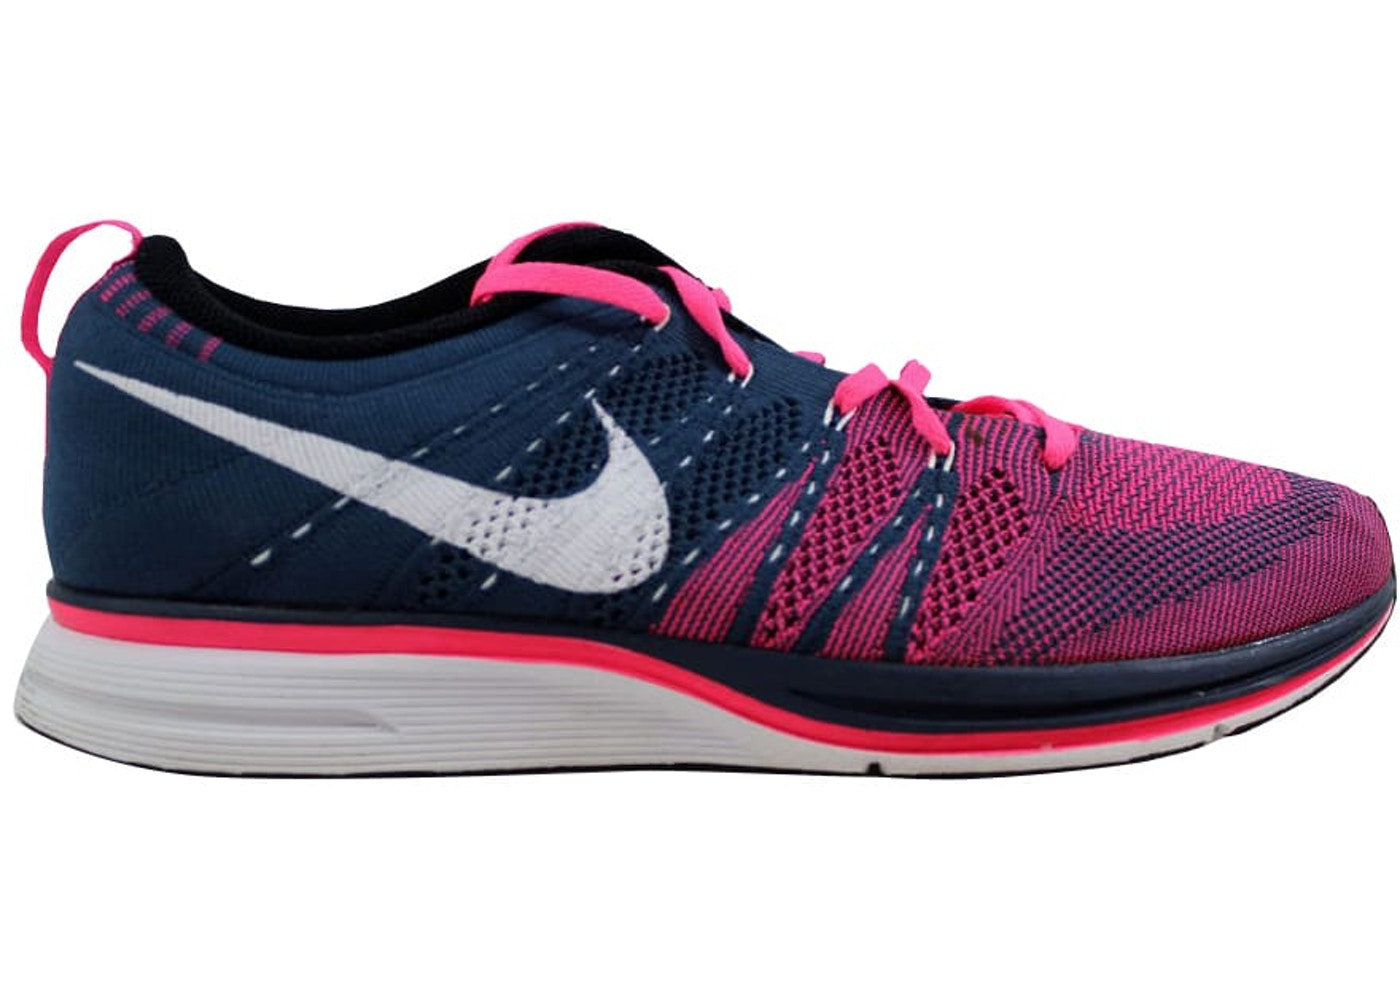 official photos f3a01 17d3d Nike Flyknit Trainer + Squadron Blue White-Pink Flash - 532984-416